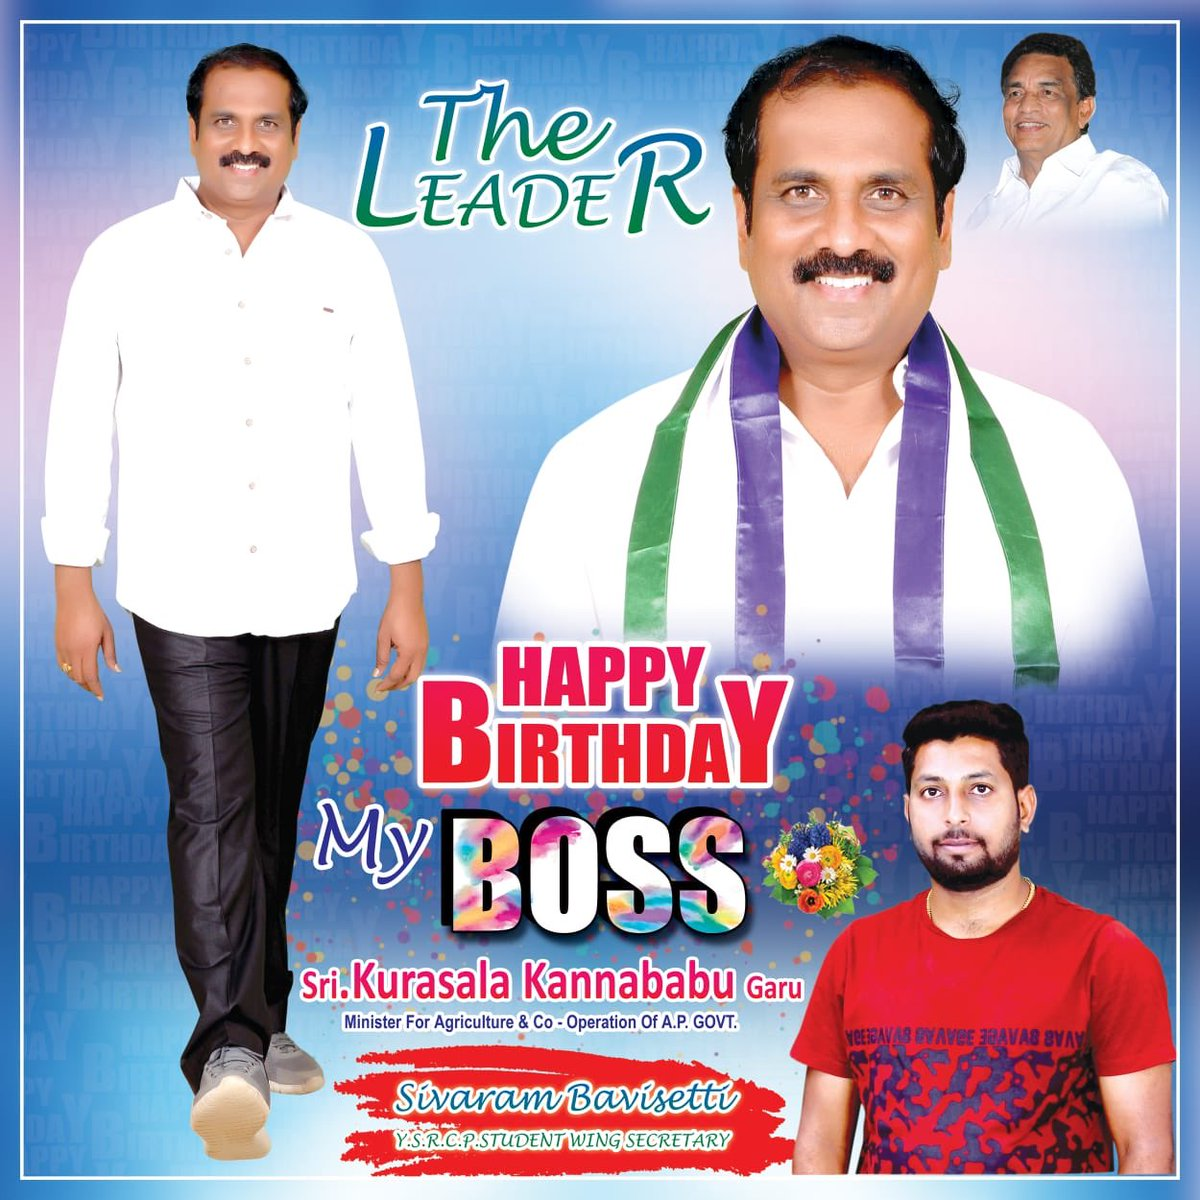 May This Day Brings You Lots Of Brightest Smiles And May This Year Be The Greatest In Ur Life...I Wish U Many More Happy Returns Of The Day Annaya@kannababu_k   #Agriculture_minister  #kakinada_rural #eastgodavari #visakha_zilla #Incharge_minister #Andhrapradeshpic.twitter.com/HG2eHHazYN